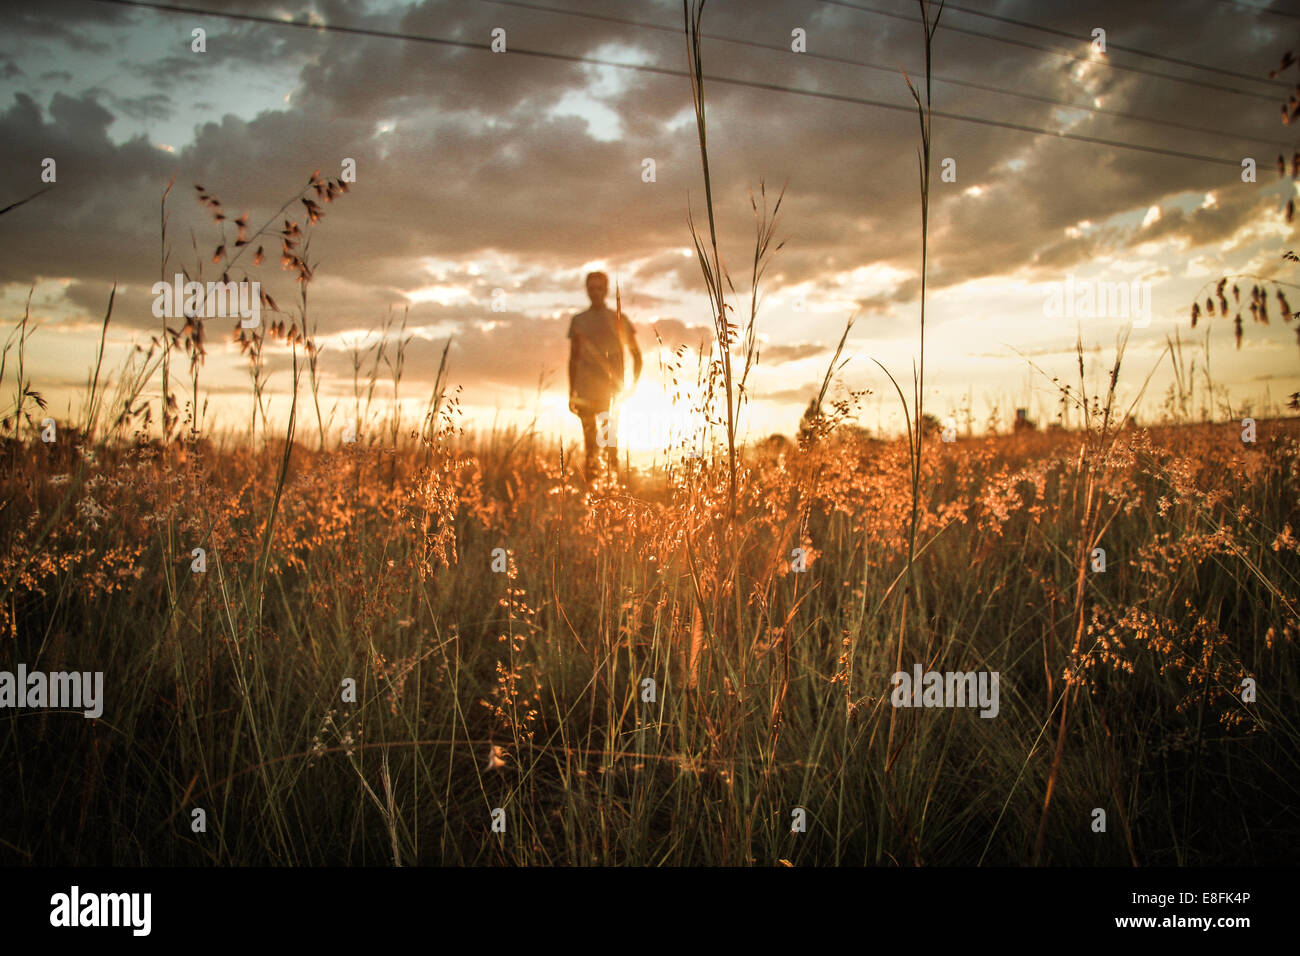 Man In Field As Sunset - Stock Image